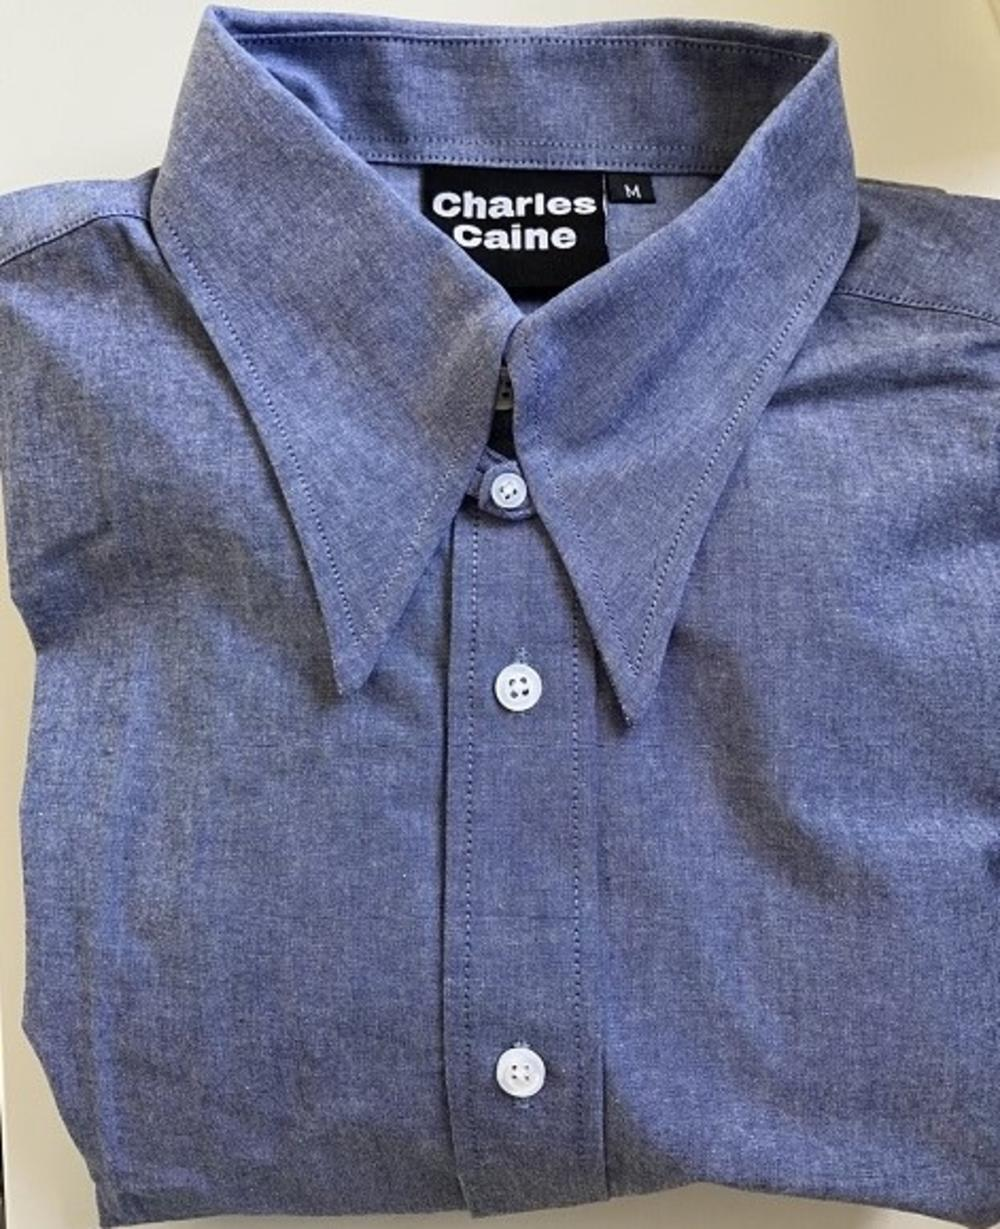 Charles Caine Spearpoint Collar Shirt Denim Chambray